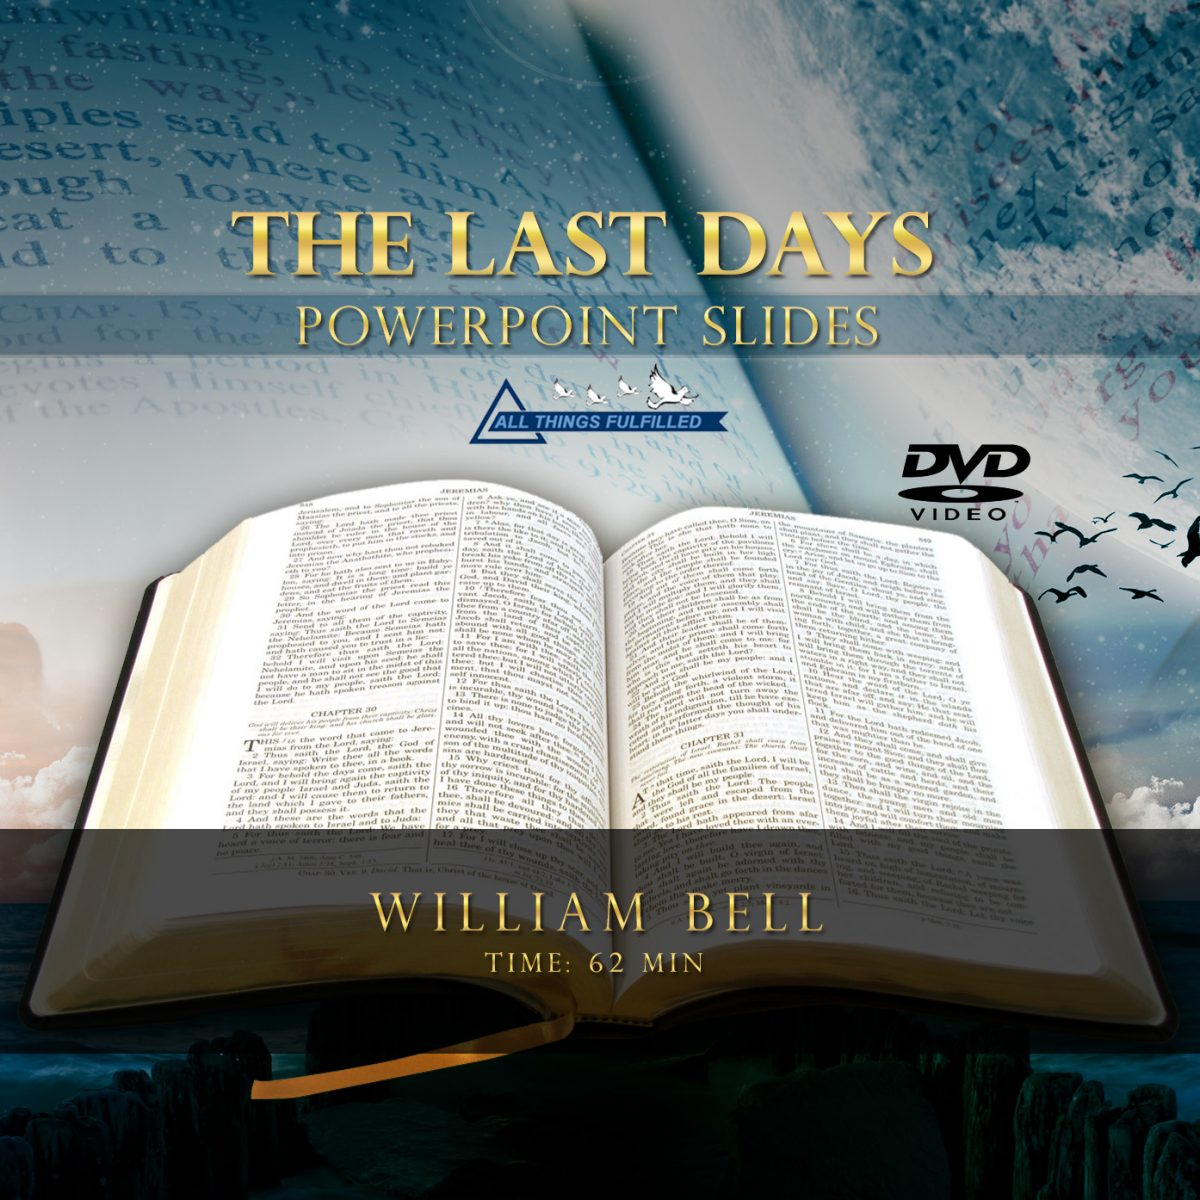 The Last Days DVD Series